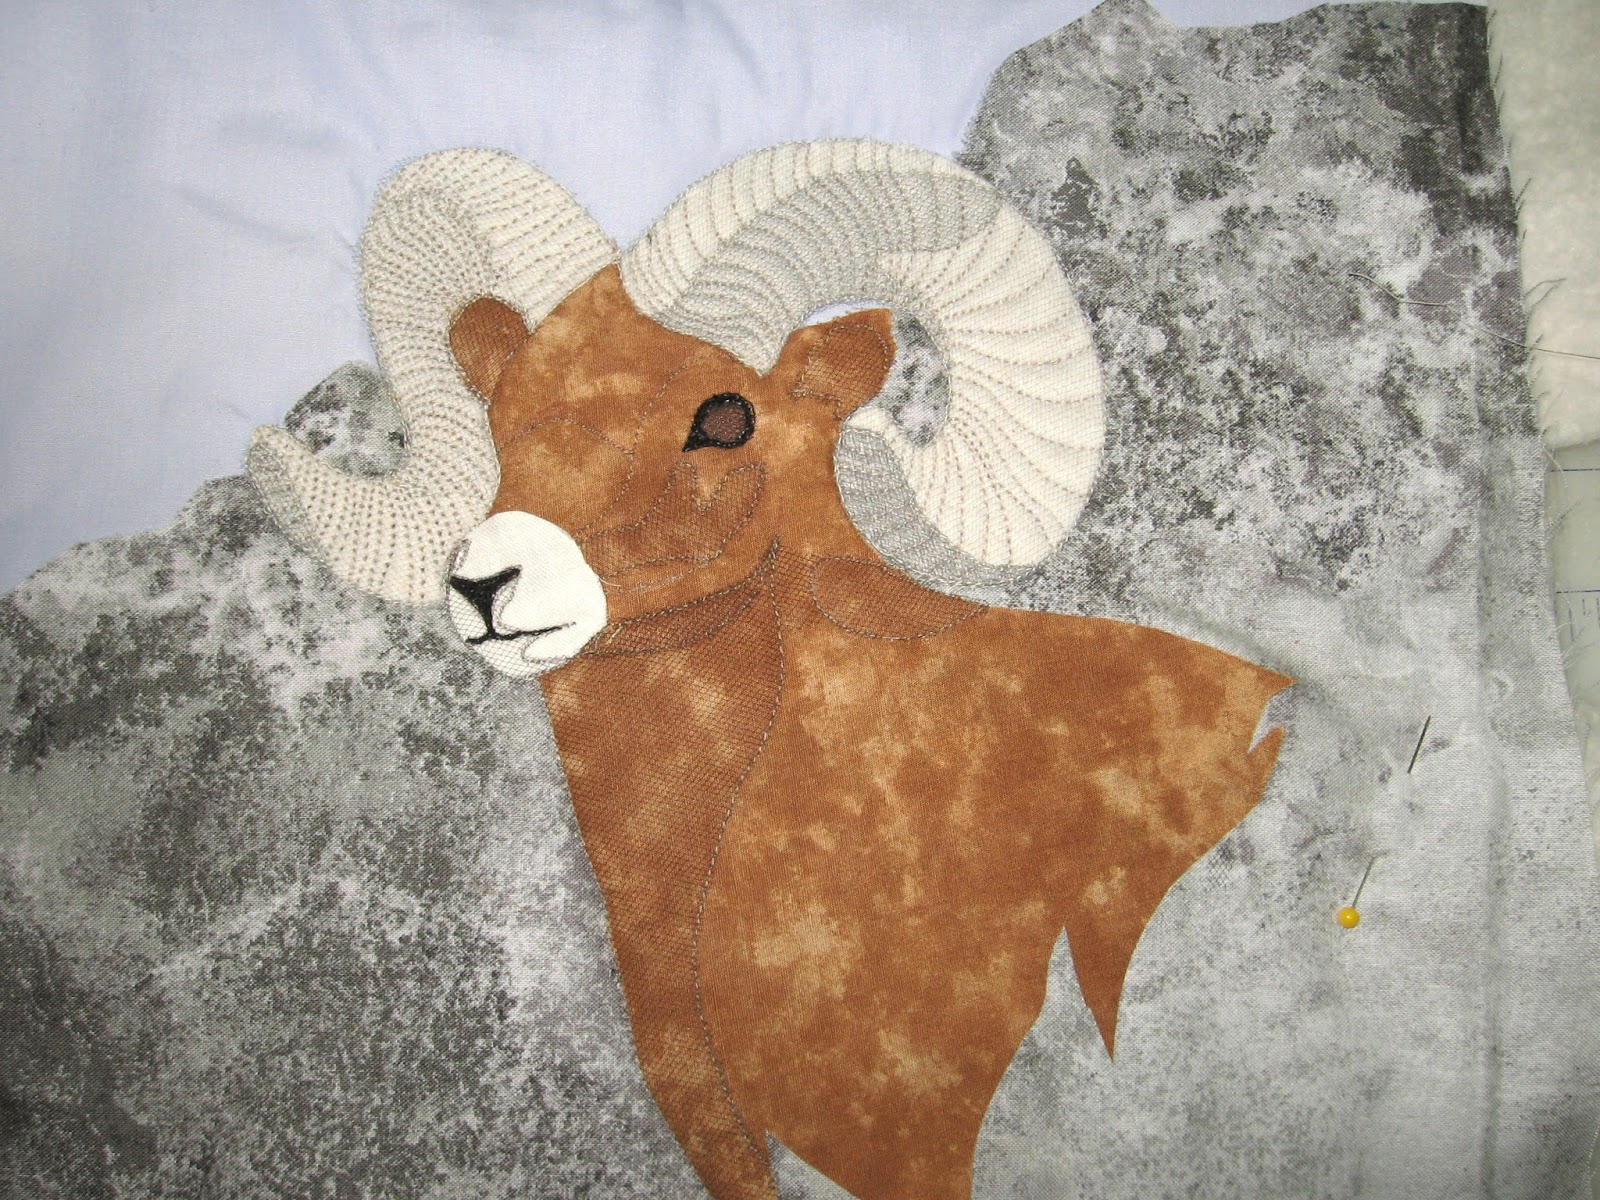 Quilted Art from Mary Katherine Hopkins: Big Horn Sheep ... : big horn quilts - Adamdwight.com